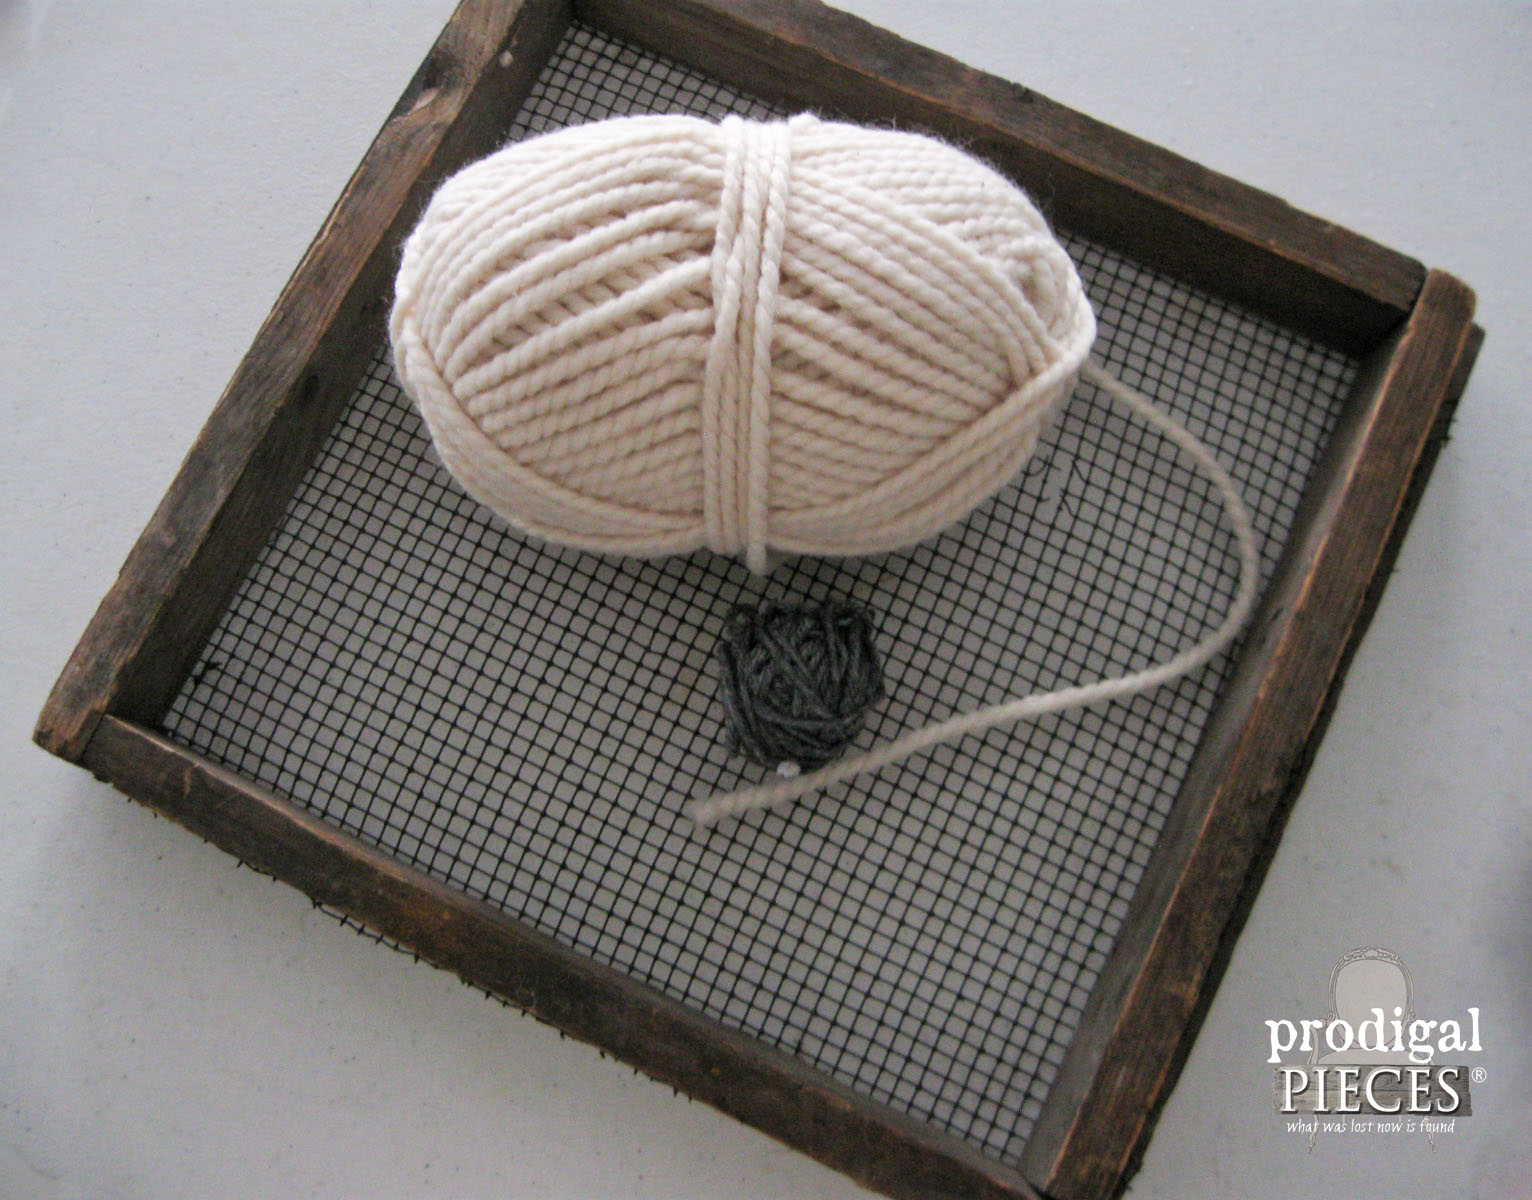 Farmhouse Screen and Wool Yarn | Prodigal Pieces | www.prodigalpieces.com